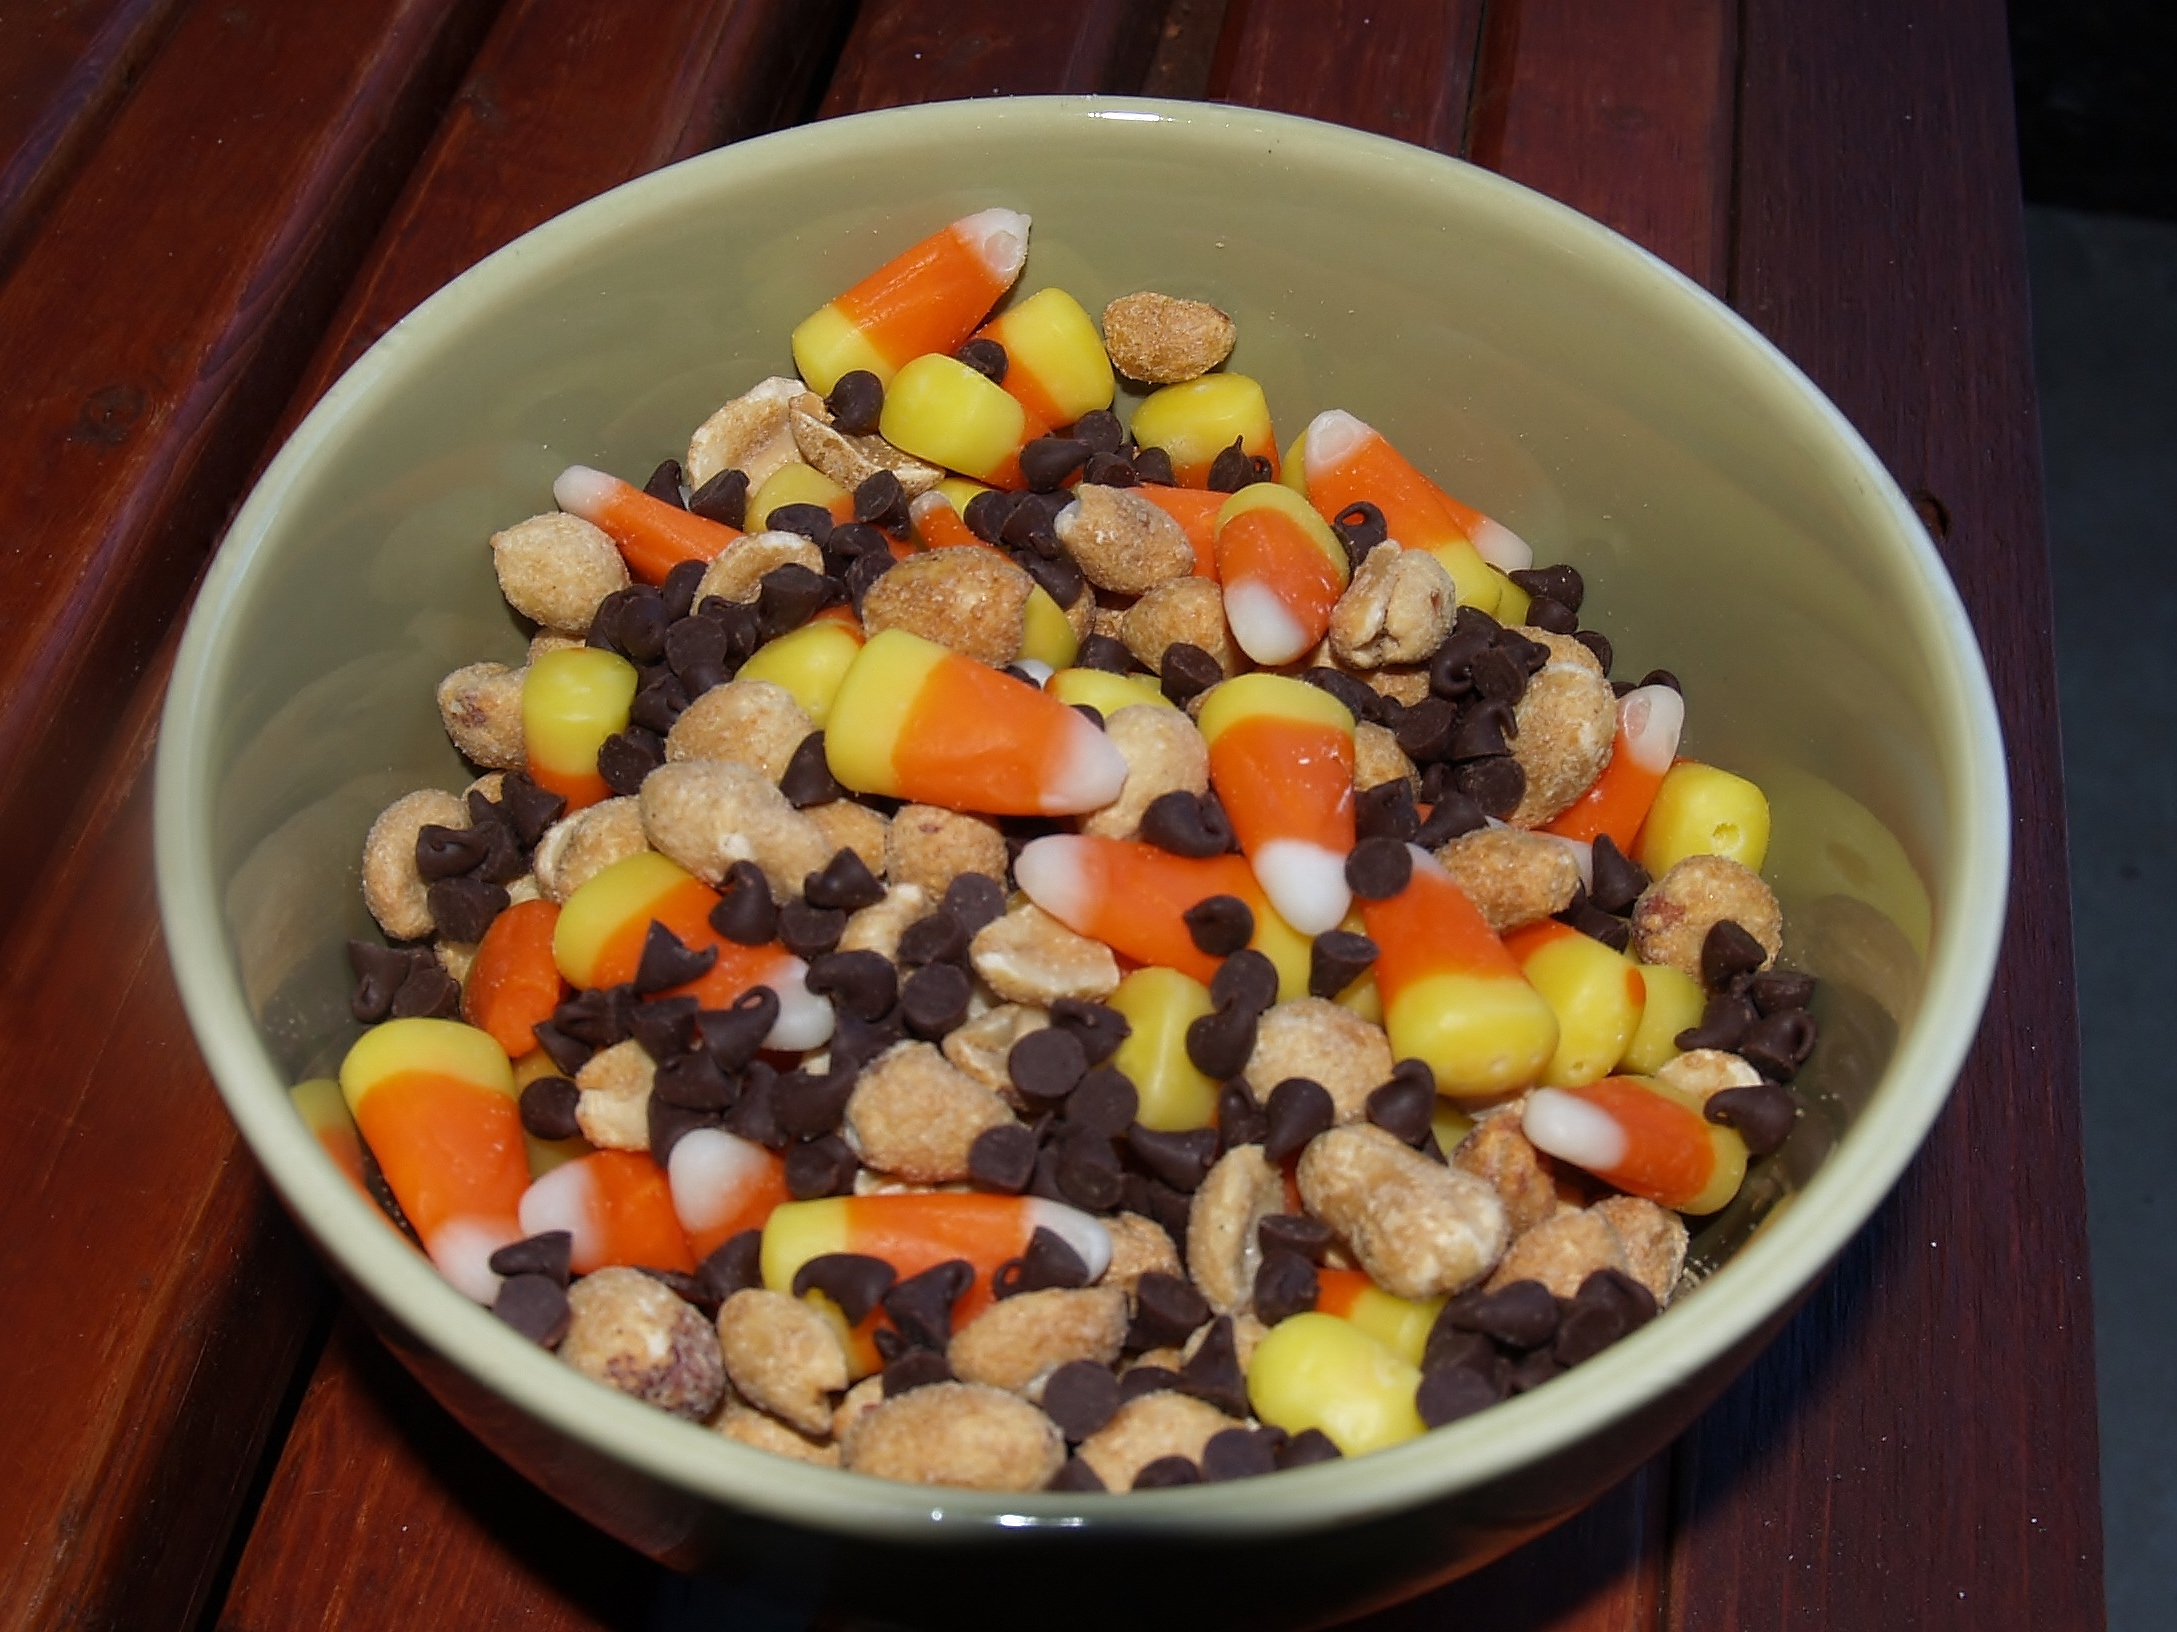 Chocolate Covered Pay Day Candy Bar Mix from Kelli's Kitchen